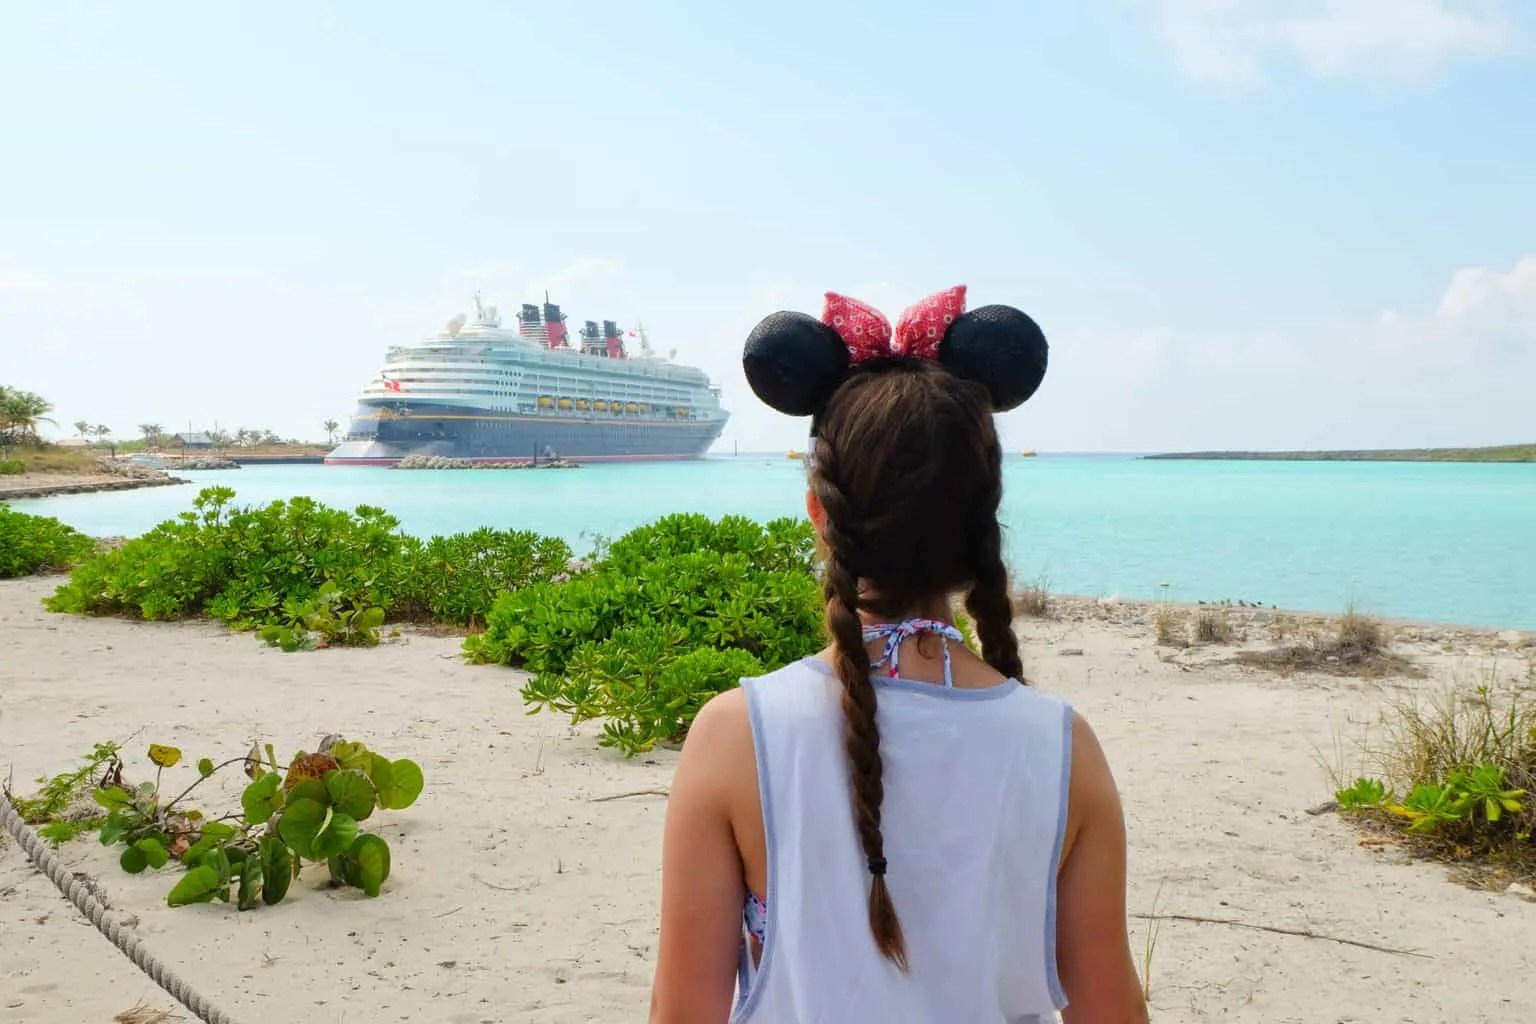 Castaway Cay: A guide to Disney's private Island